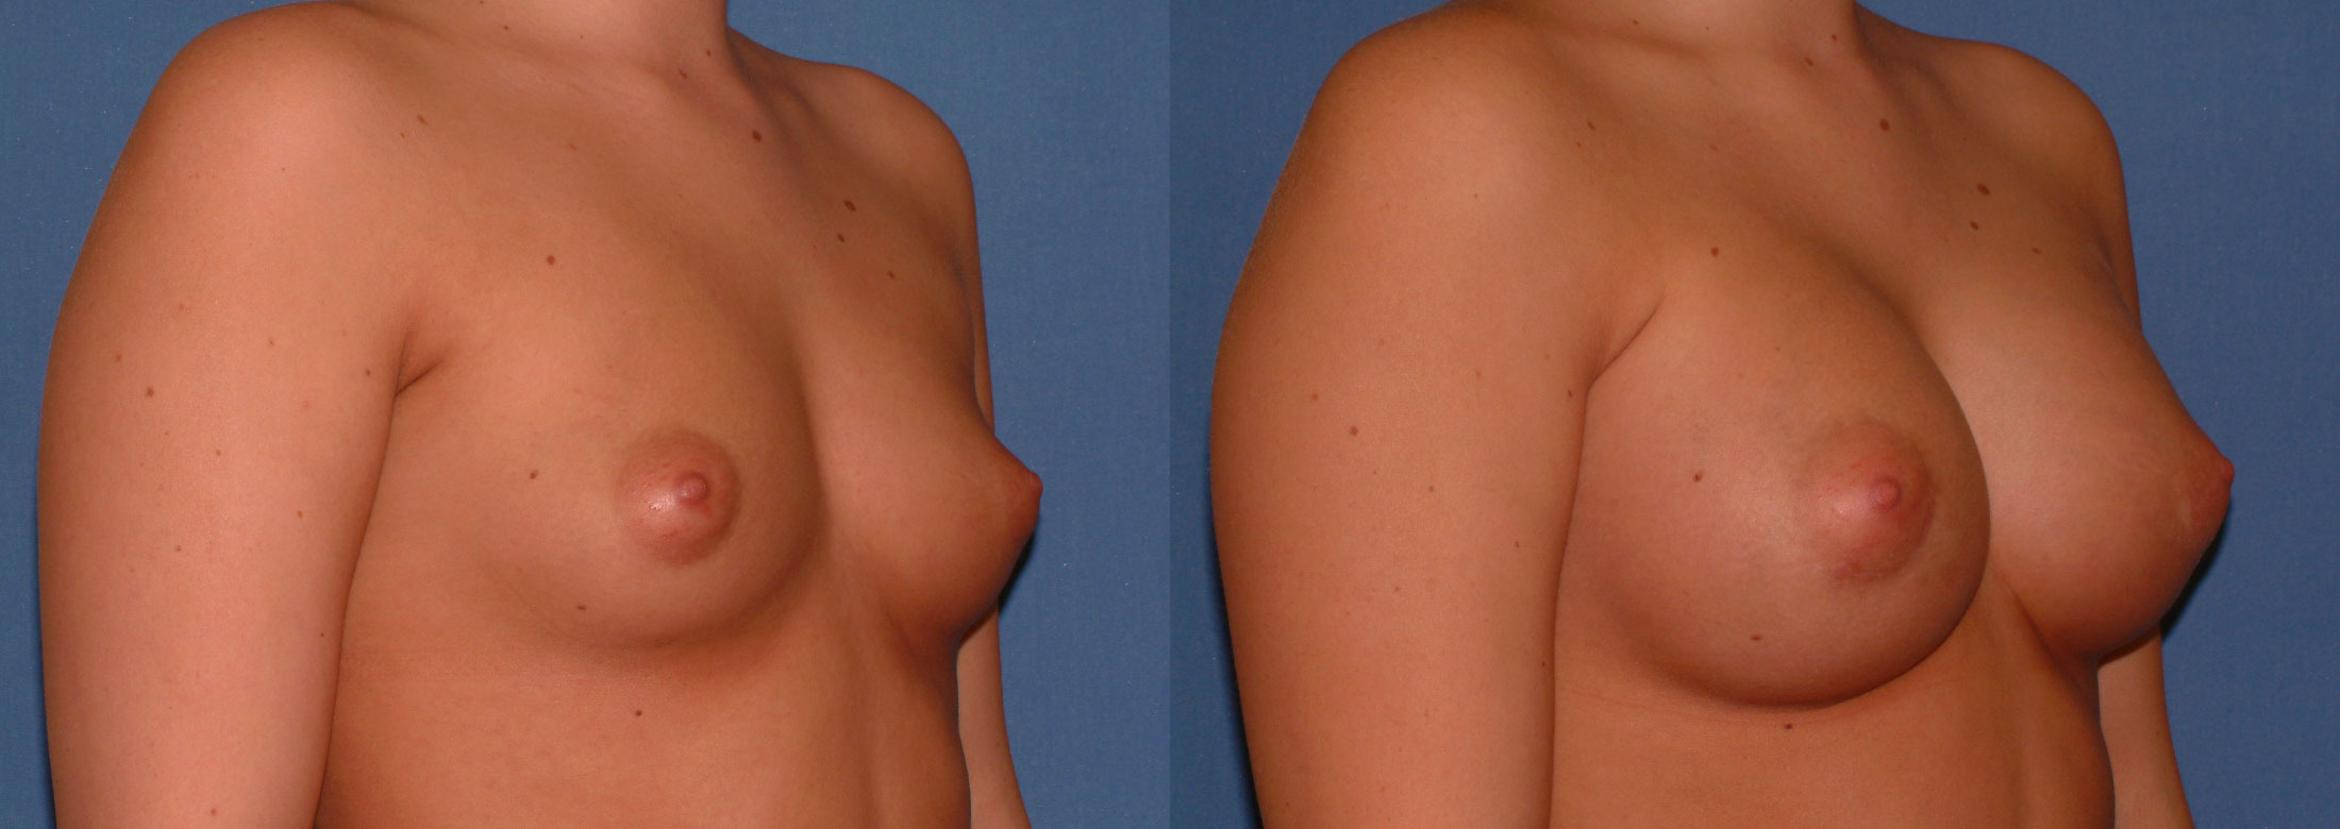 Breast Augmentation Case 28 Before & After View #2 | Downers Grove, IL | Dr. Sandeep Jejurikar